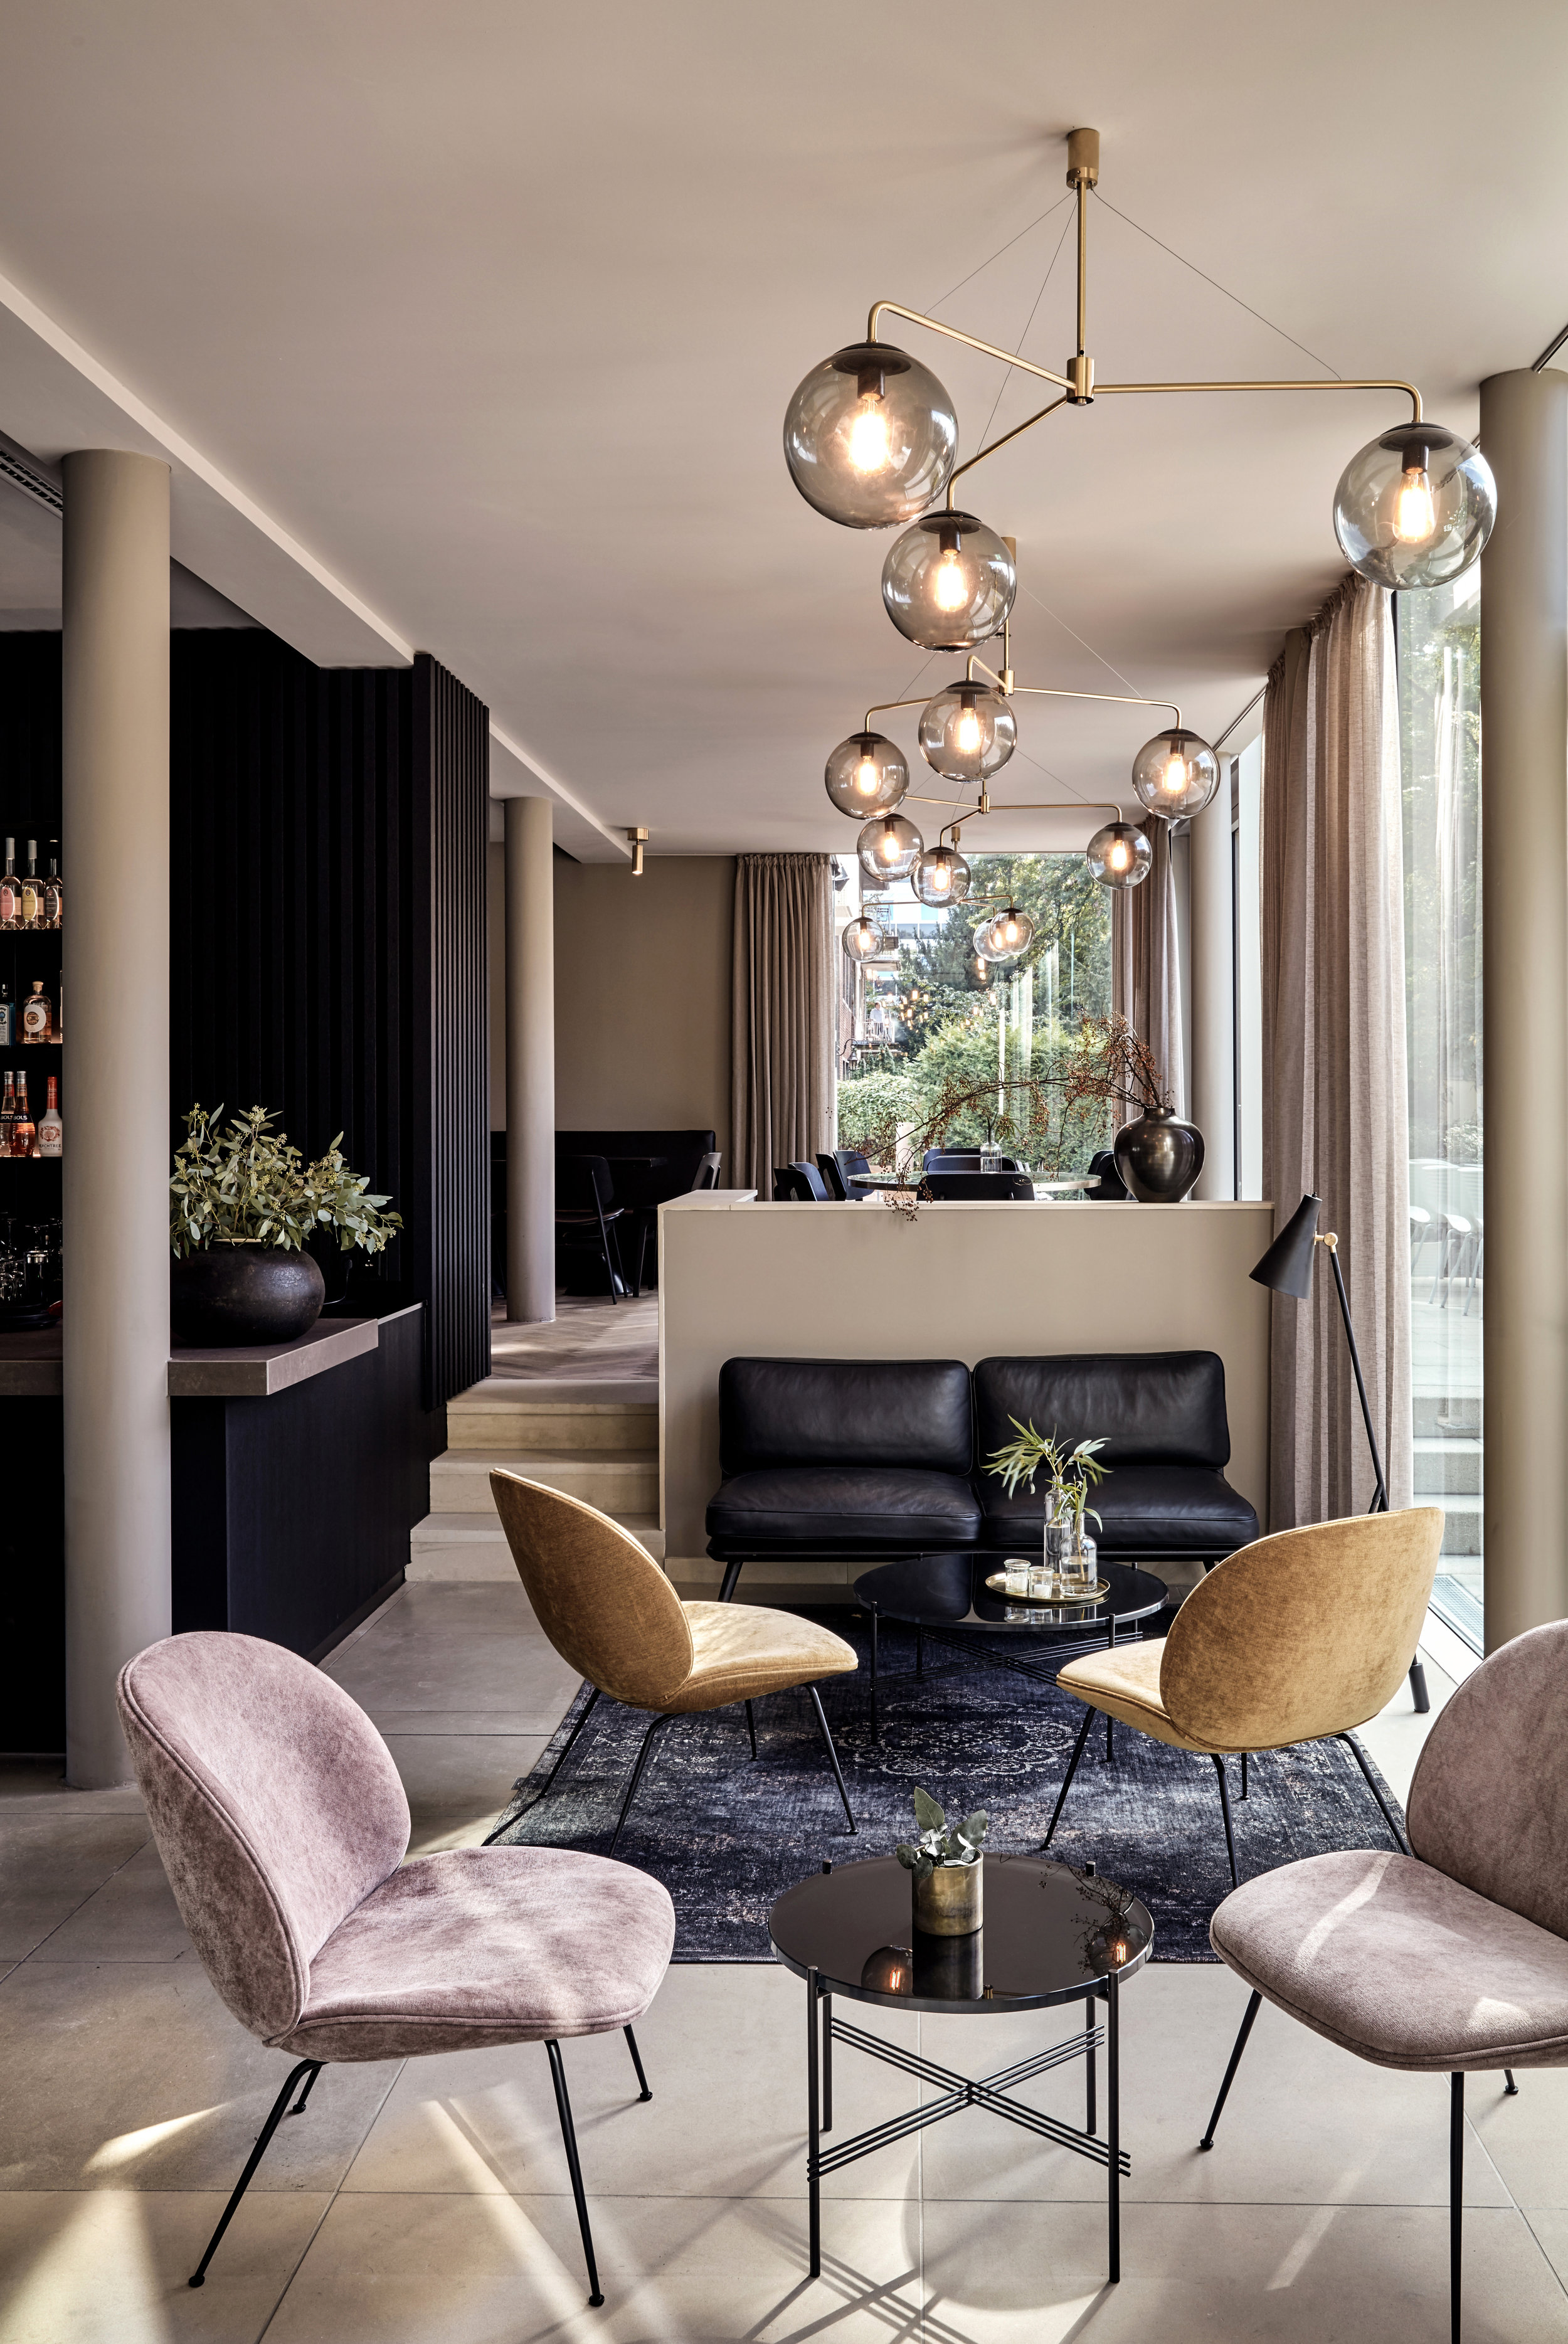 Gubi Lounge chairs at the Hotel Mauritzhof, Germany